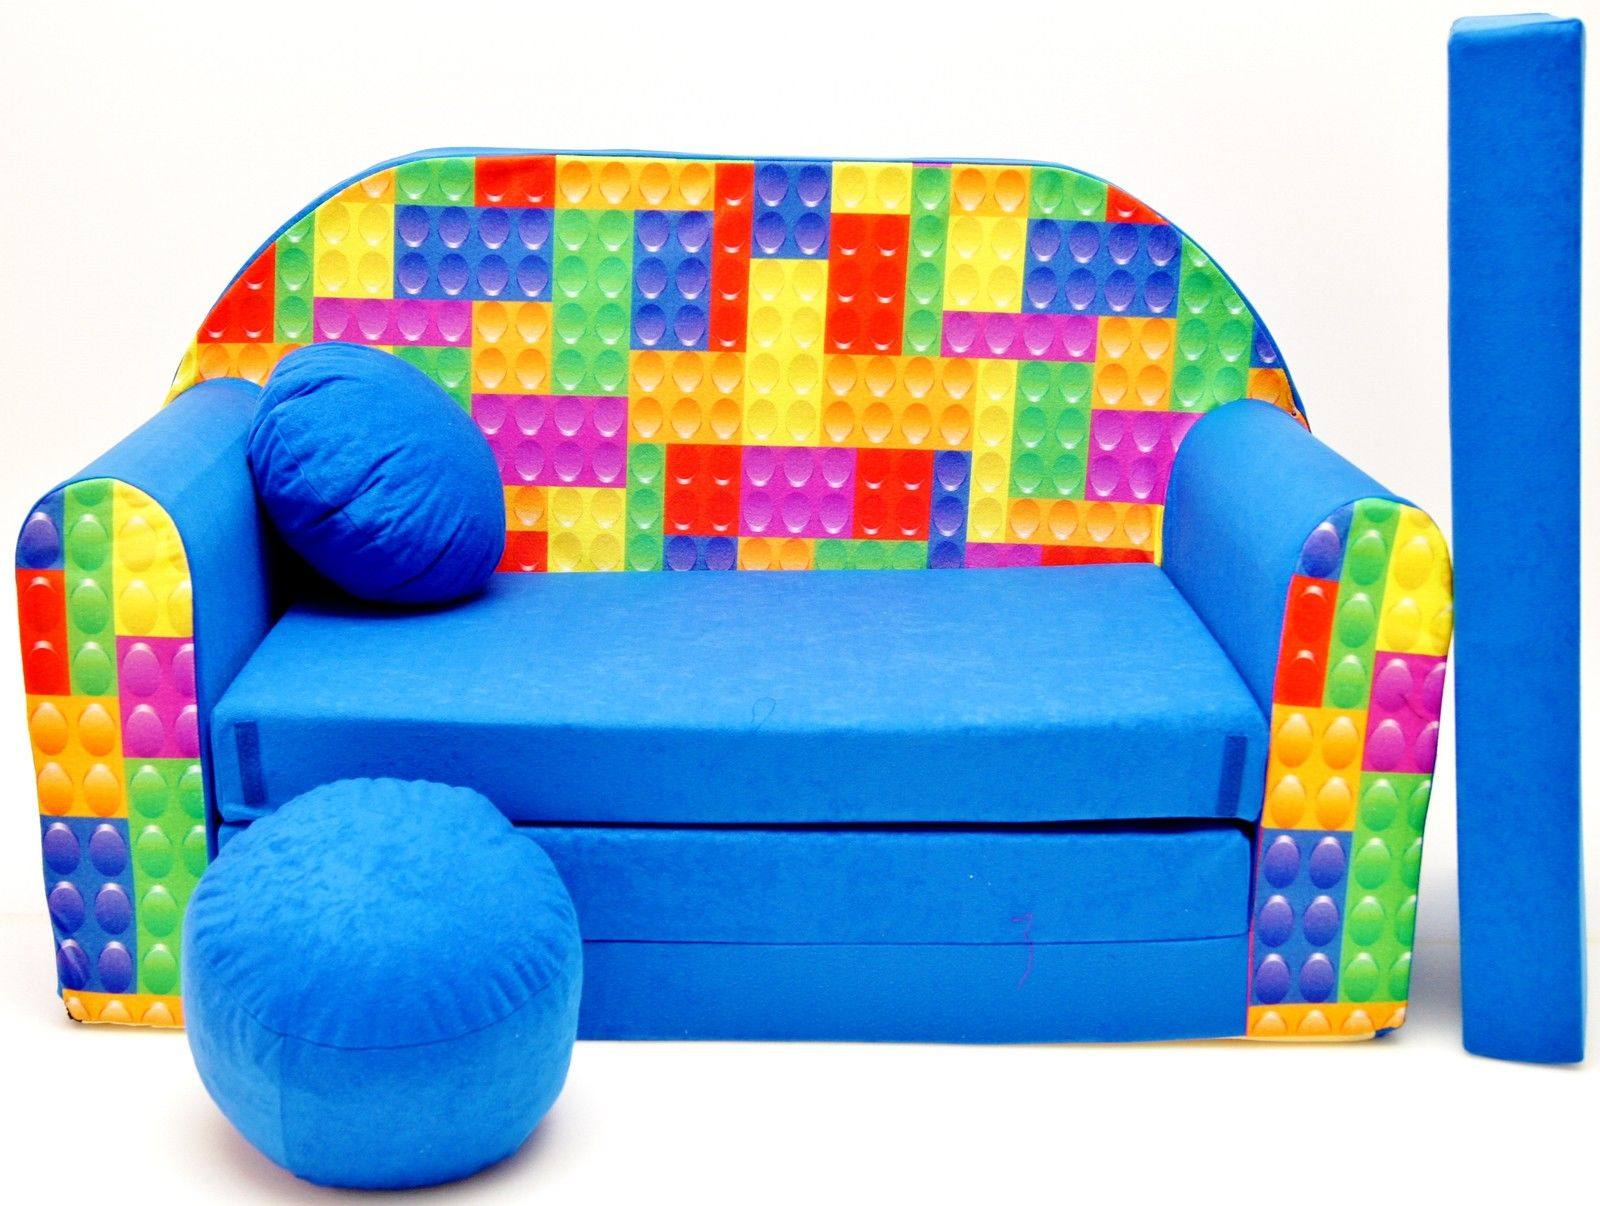 sofa bed for child 3 seater leather covers childrens beds gradschoolfairs